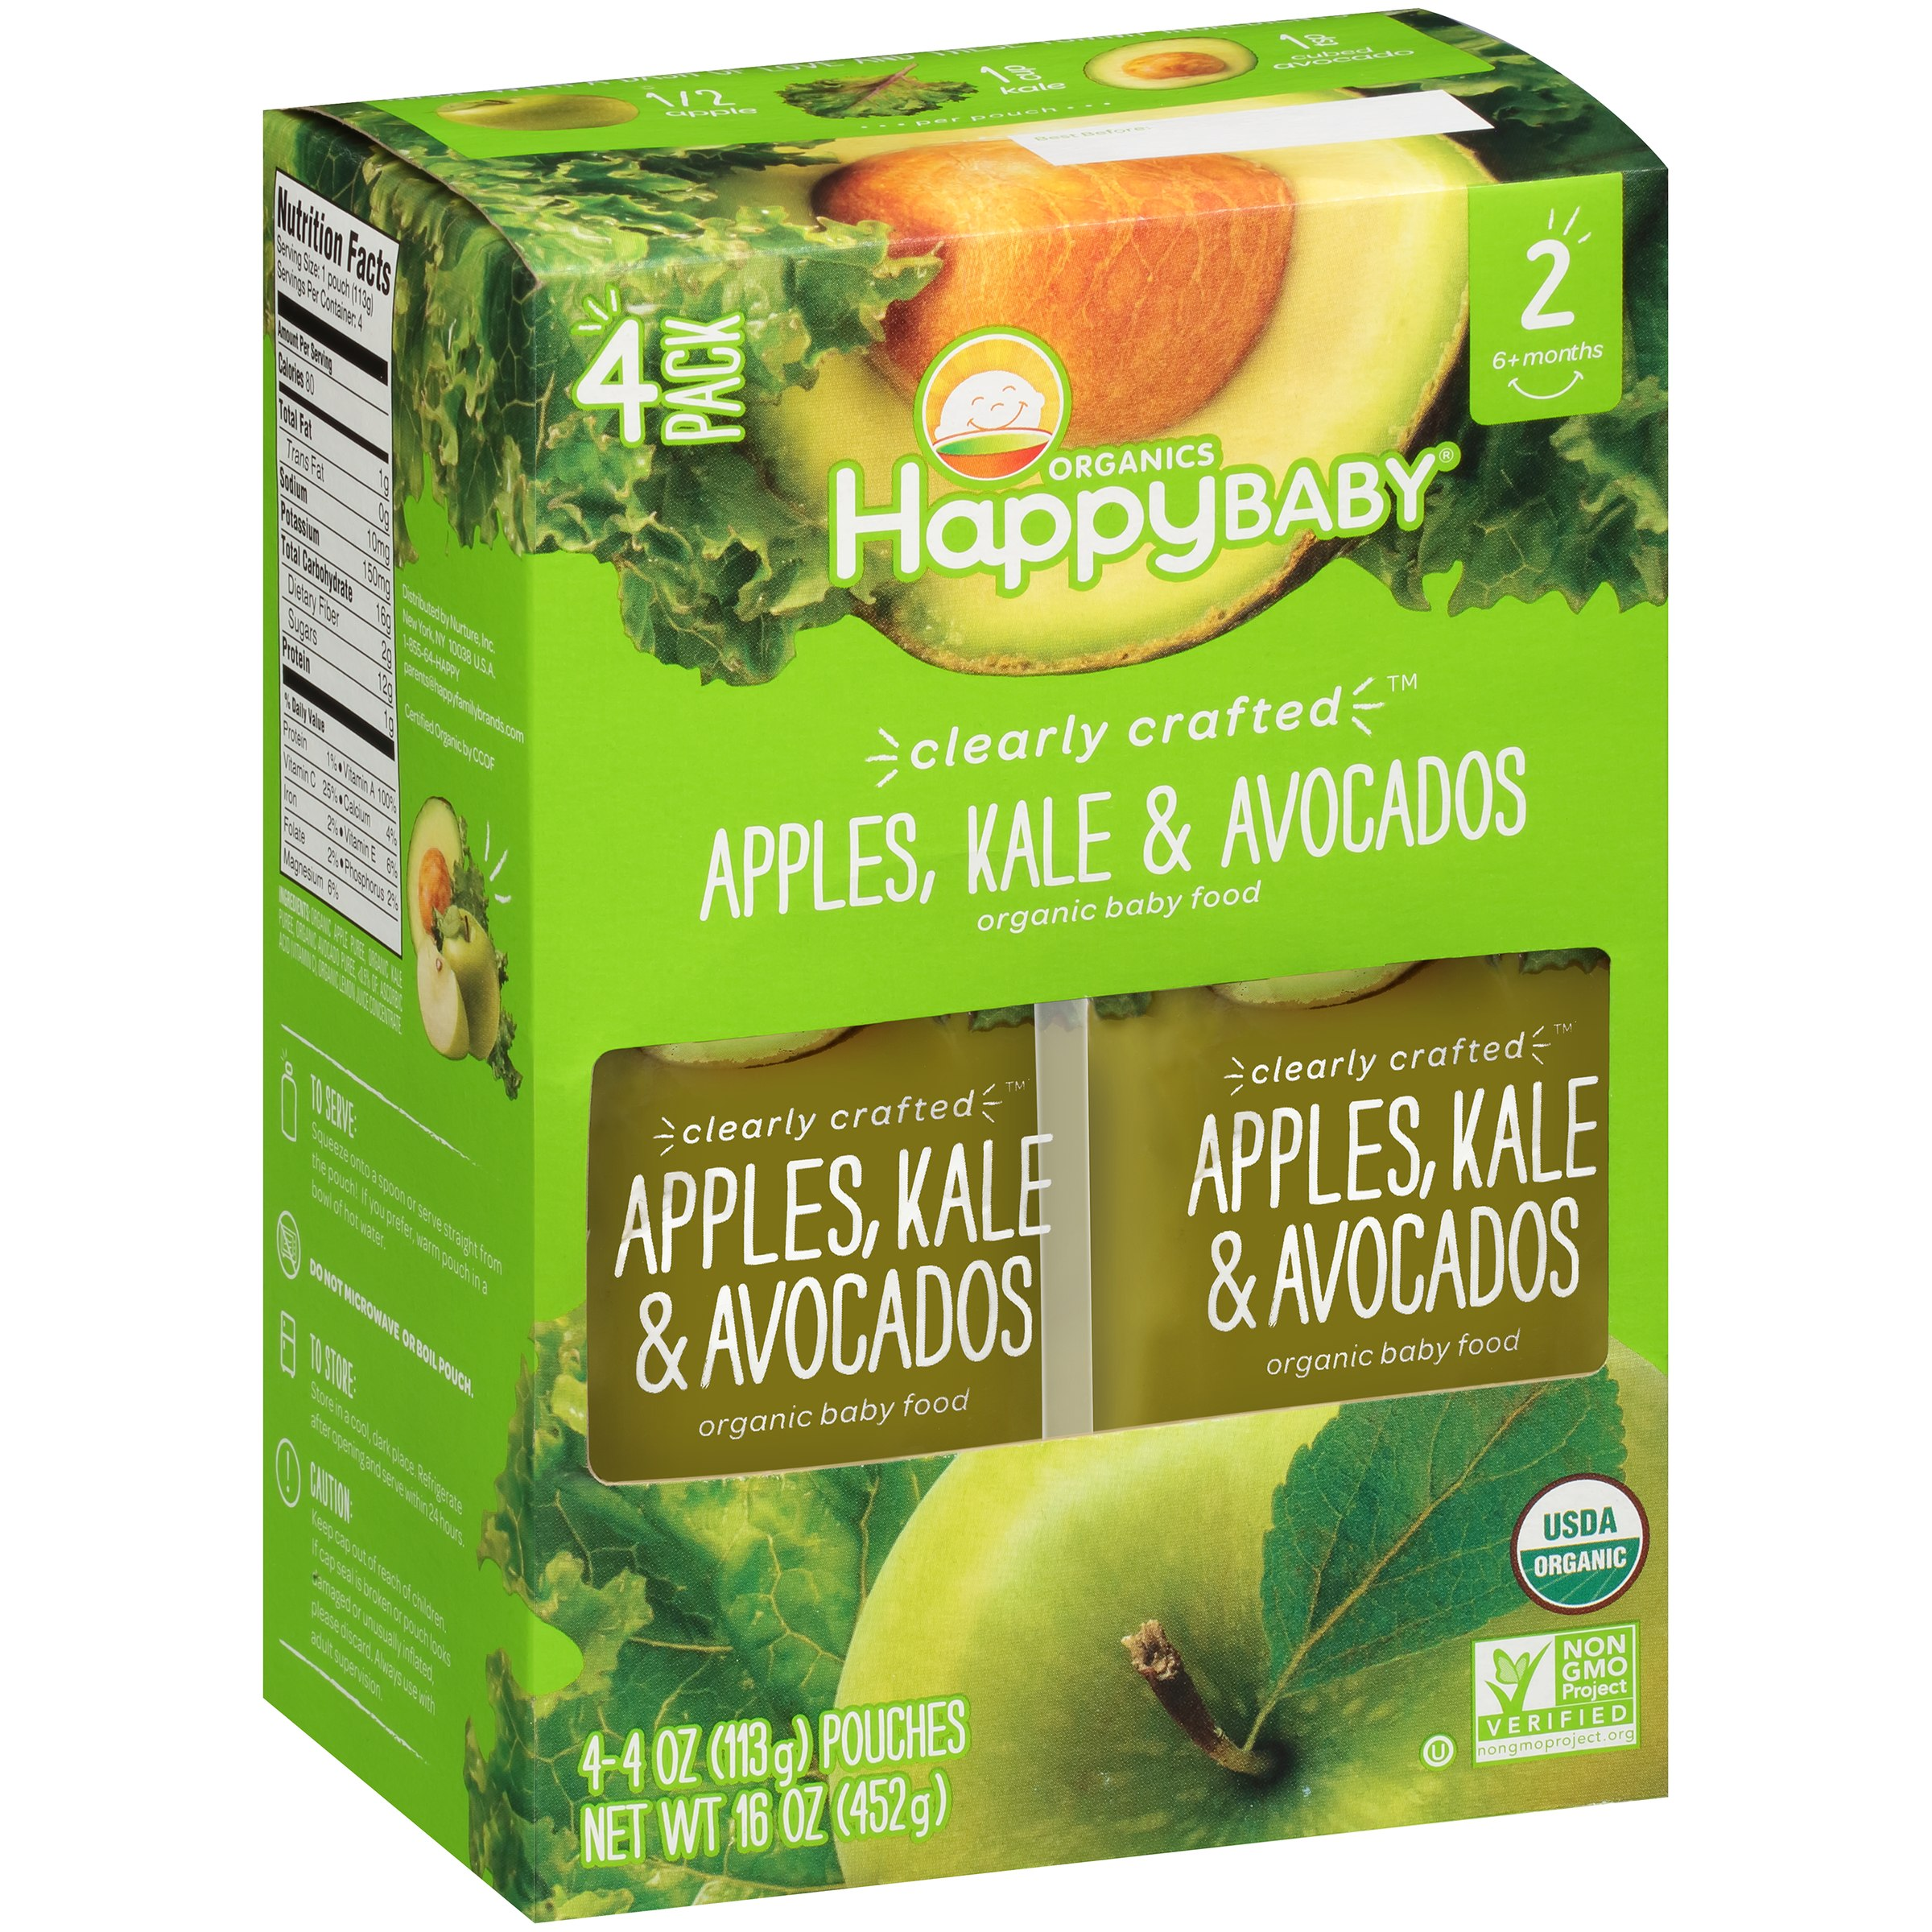 Happy Baby® Organics Clearly Crafted™ Apples, Kale & Avocados Organic Baby Food 4-4 oz. Pouches